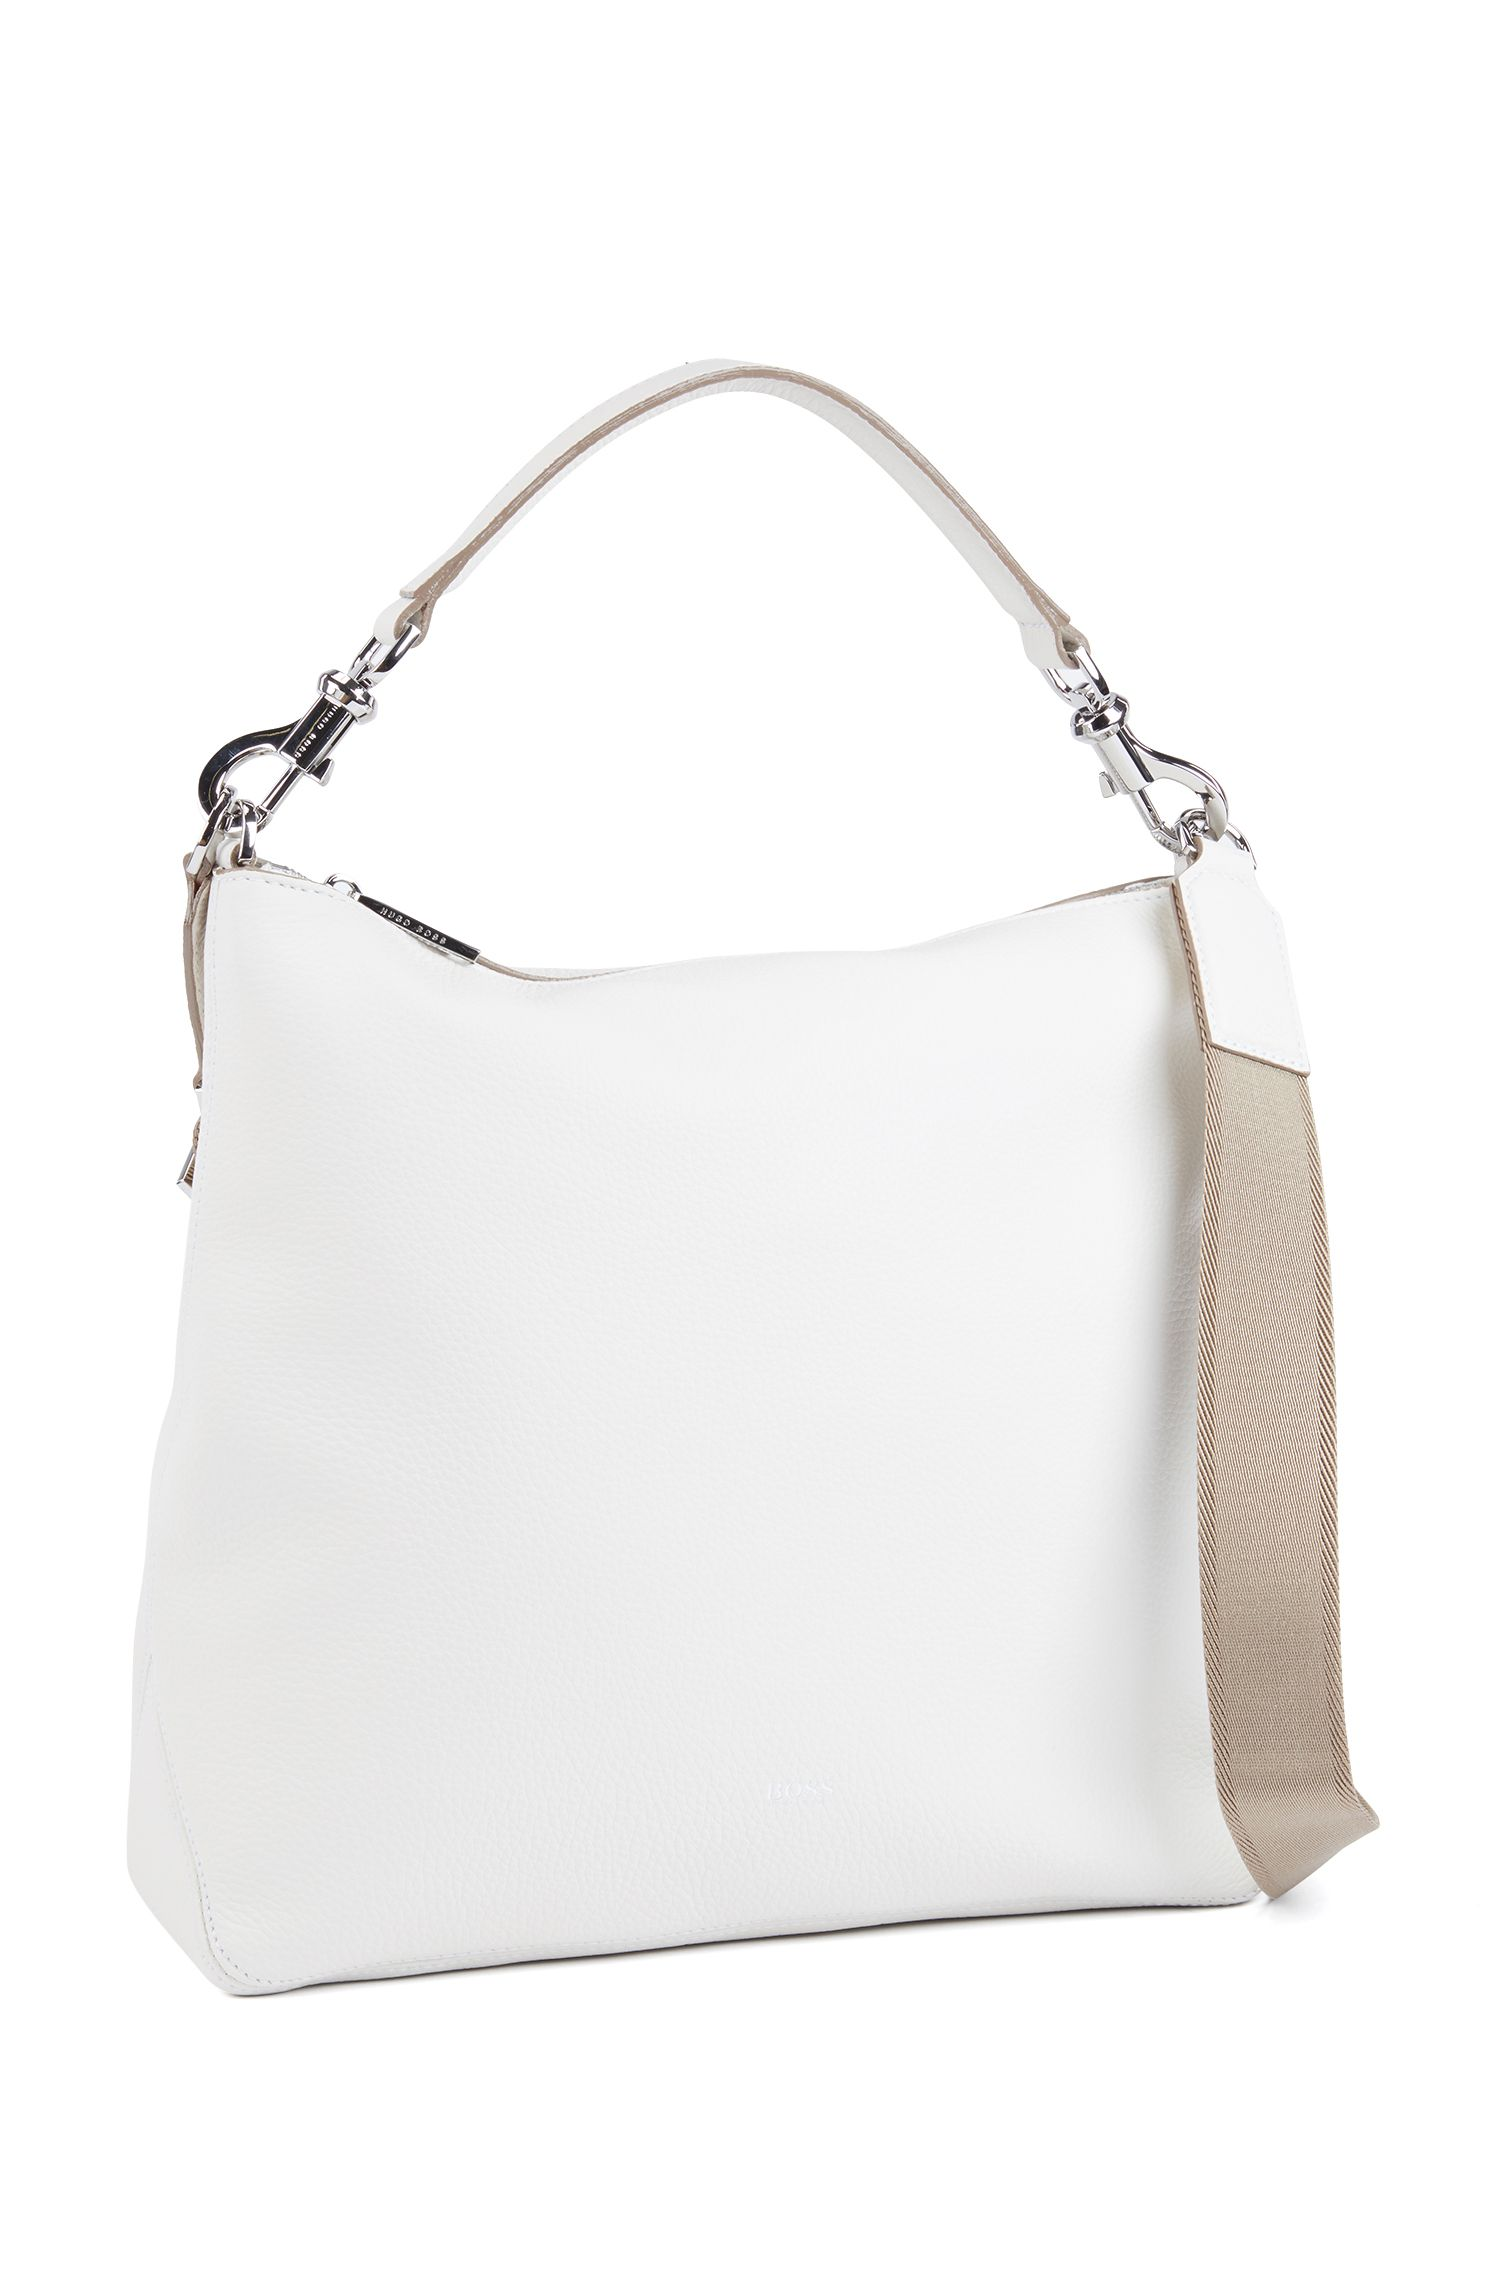 Hobo bag in grainy Italian leather with detachable strap, White